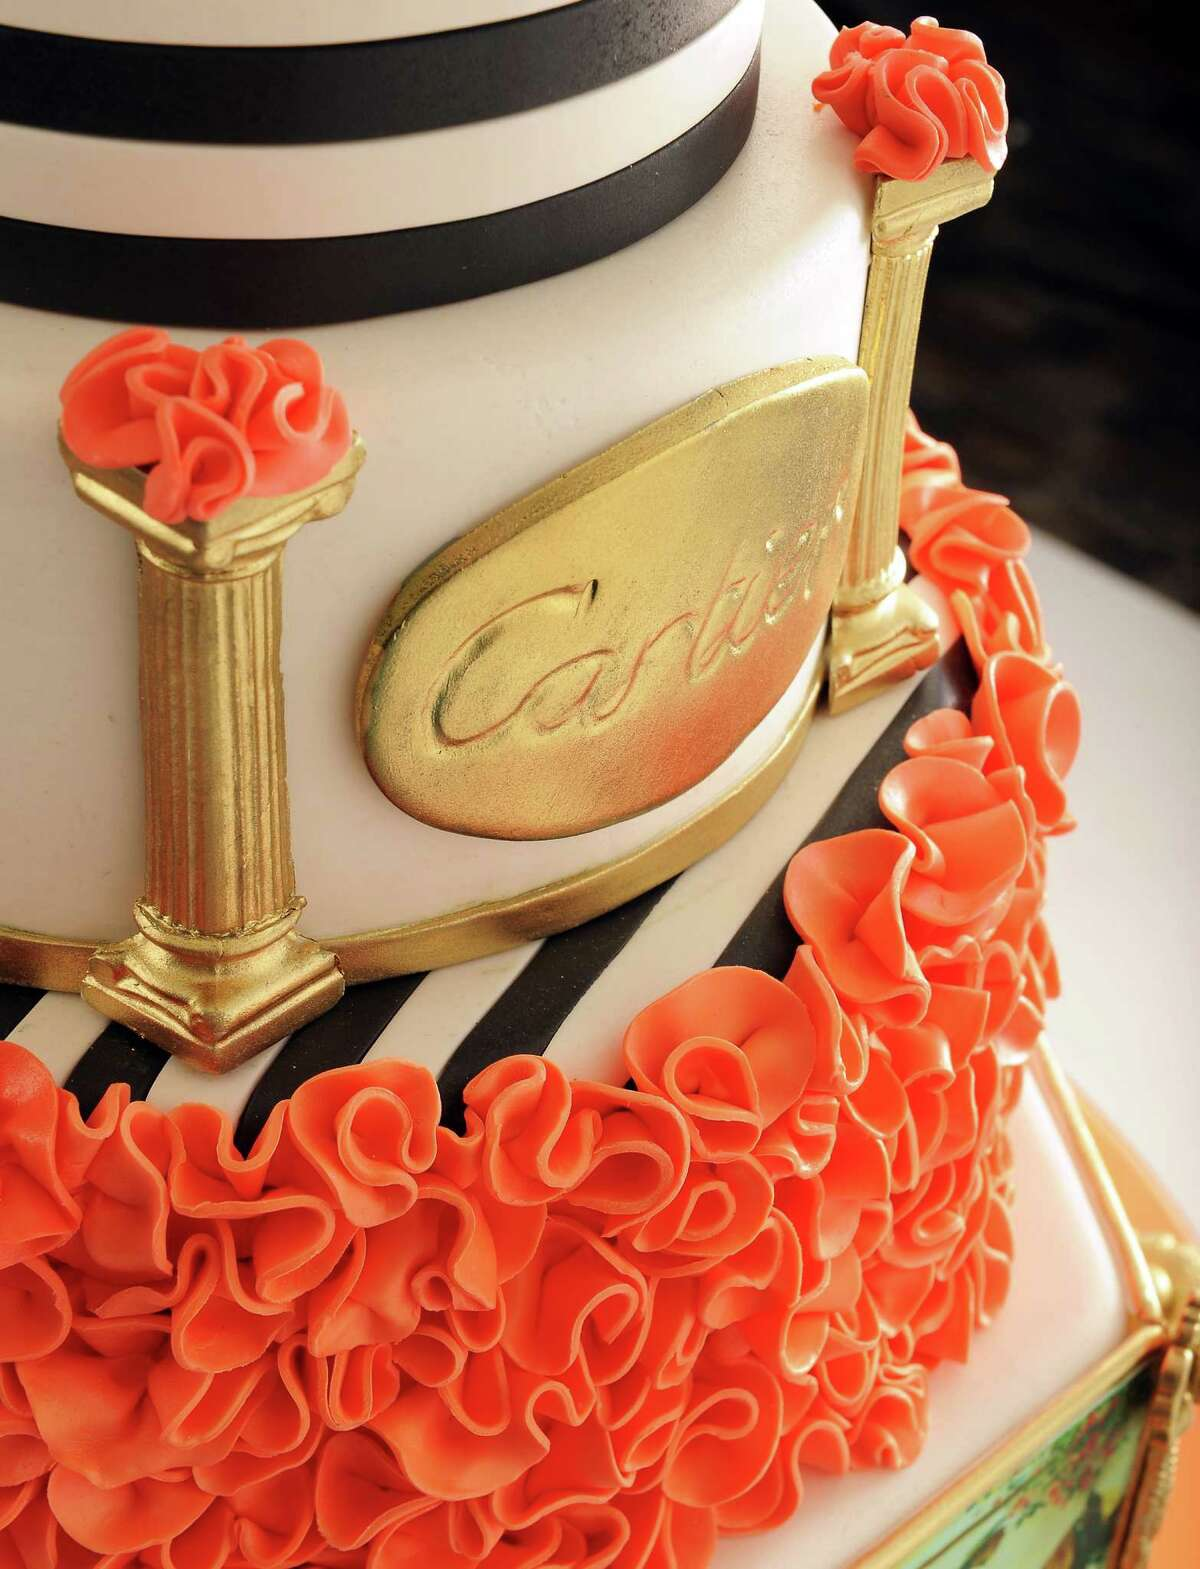 Treatie Beatie Cakes by Evelyn; 1514 Union Ave., Schenectady; 280-2329; website; a highly stylized New York City-themed fashion cake that uses fondant for its decor (John Carl D'Annibale / Times Union)